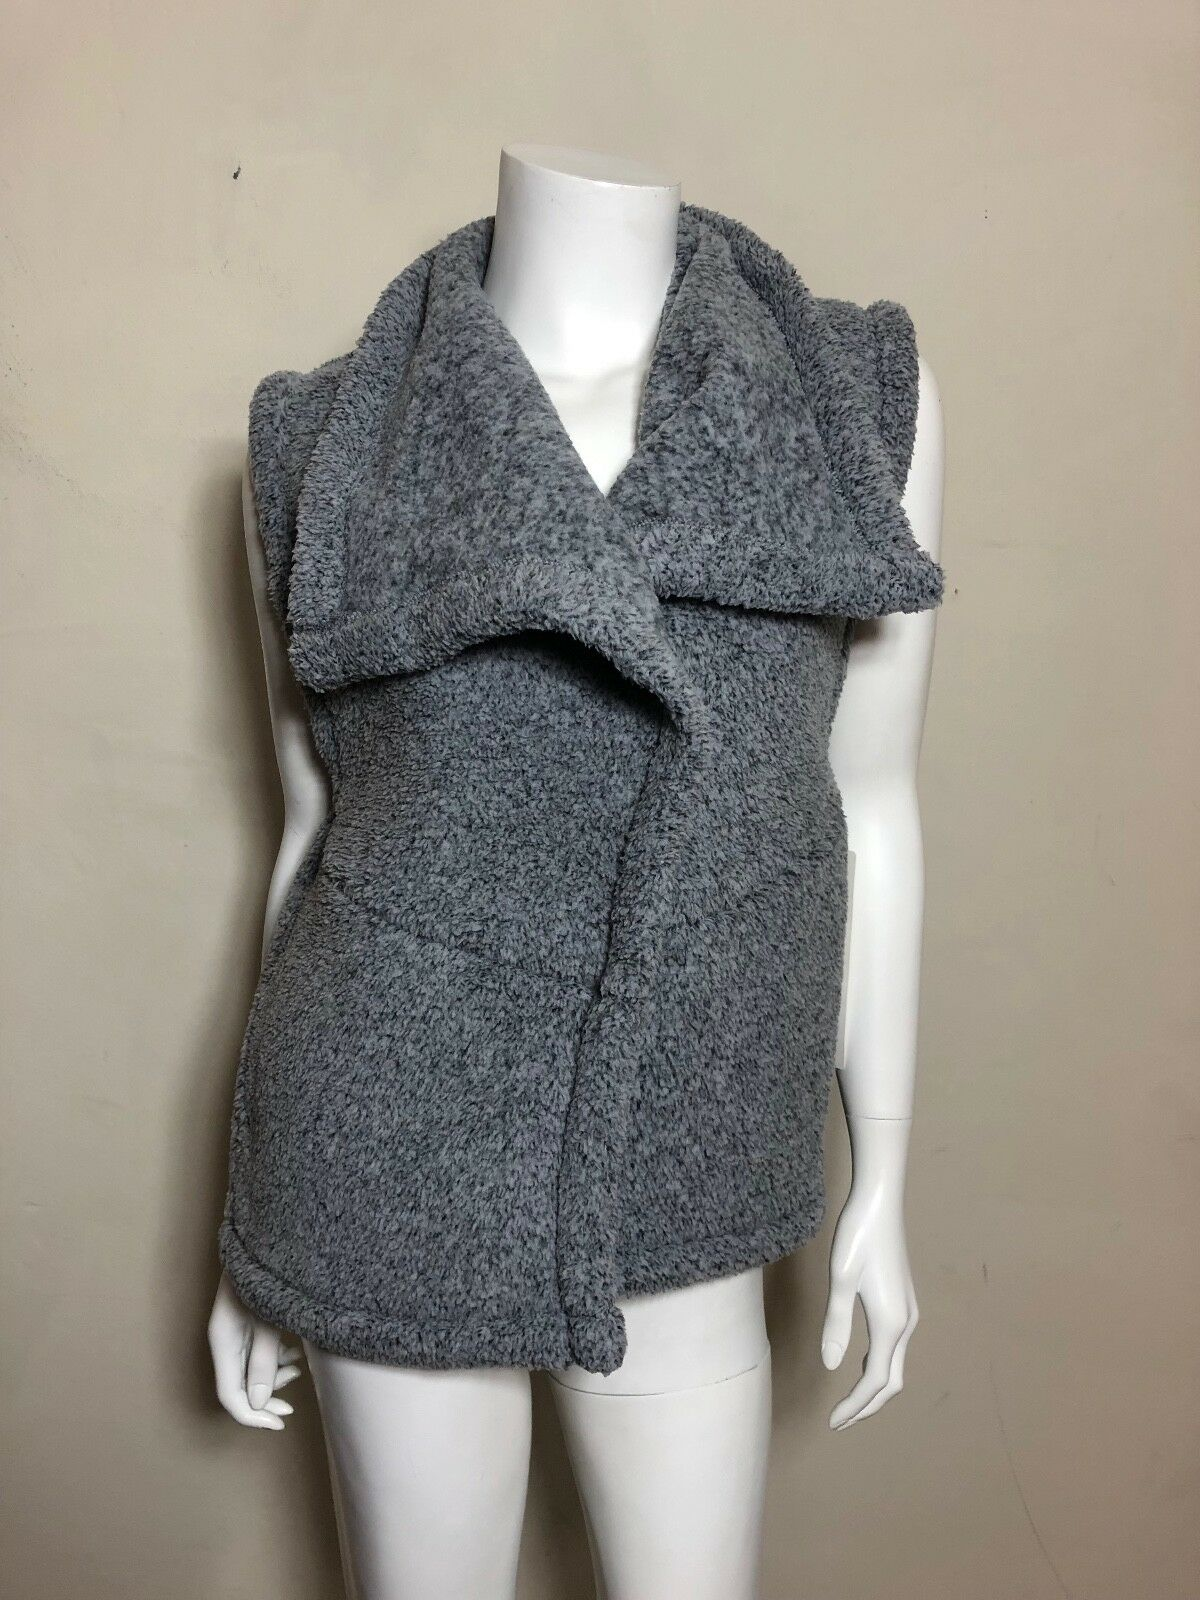 NWT Lucy Hatha Sherpa Vest in Grey Size Size Size S 3f6876